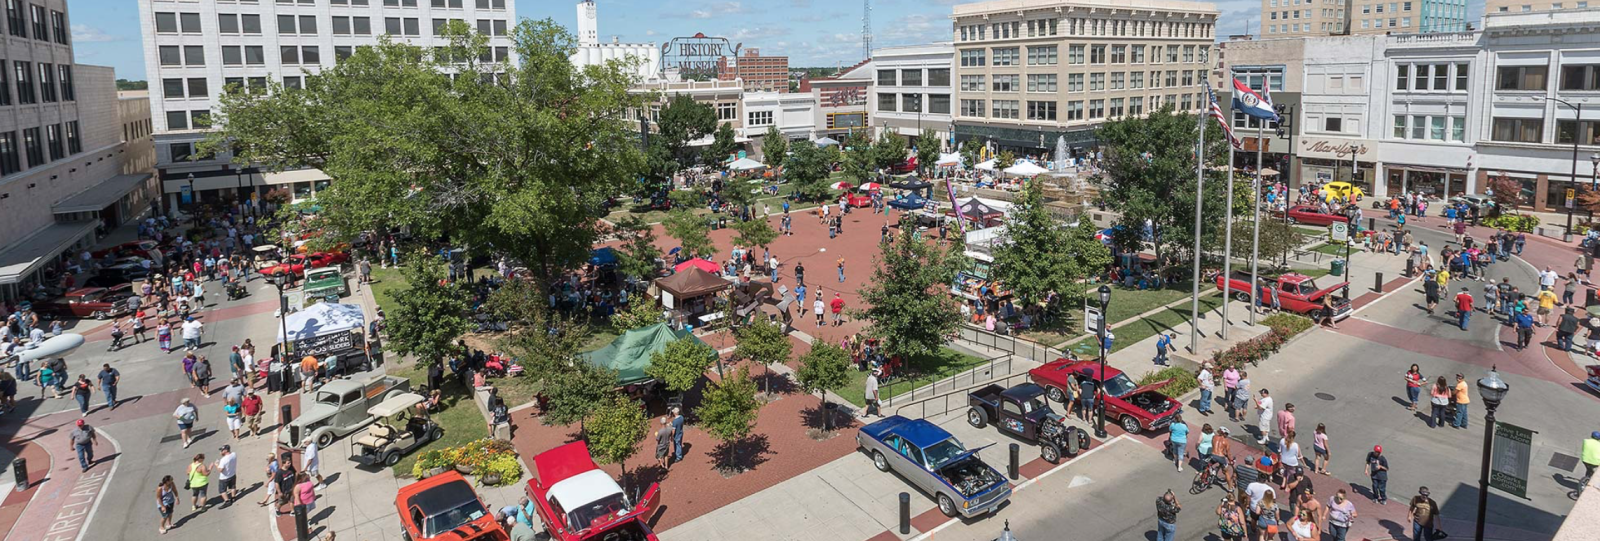 Downtown Springfield, Missouri, Upcoming Events in